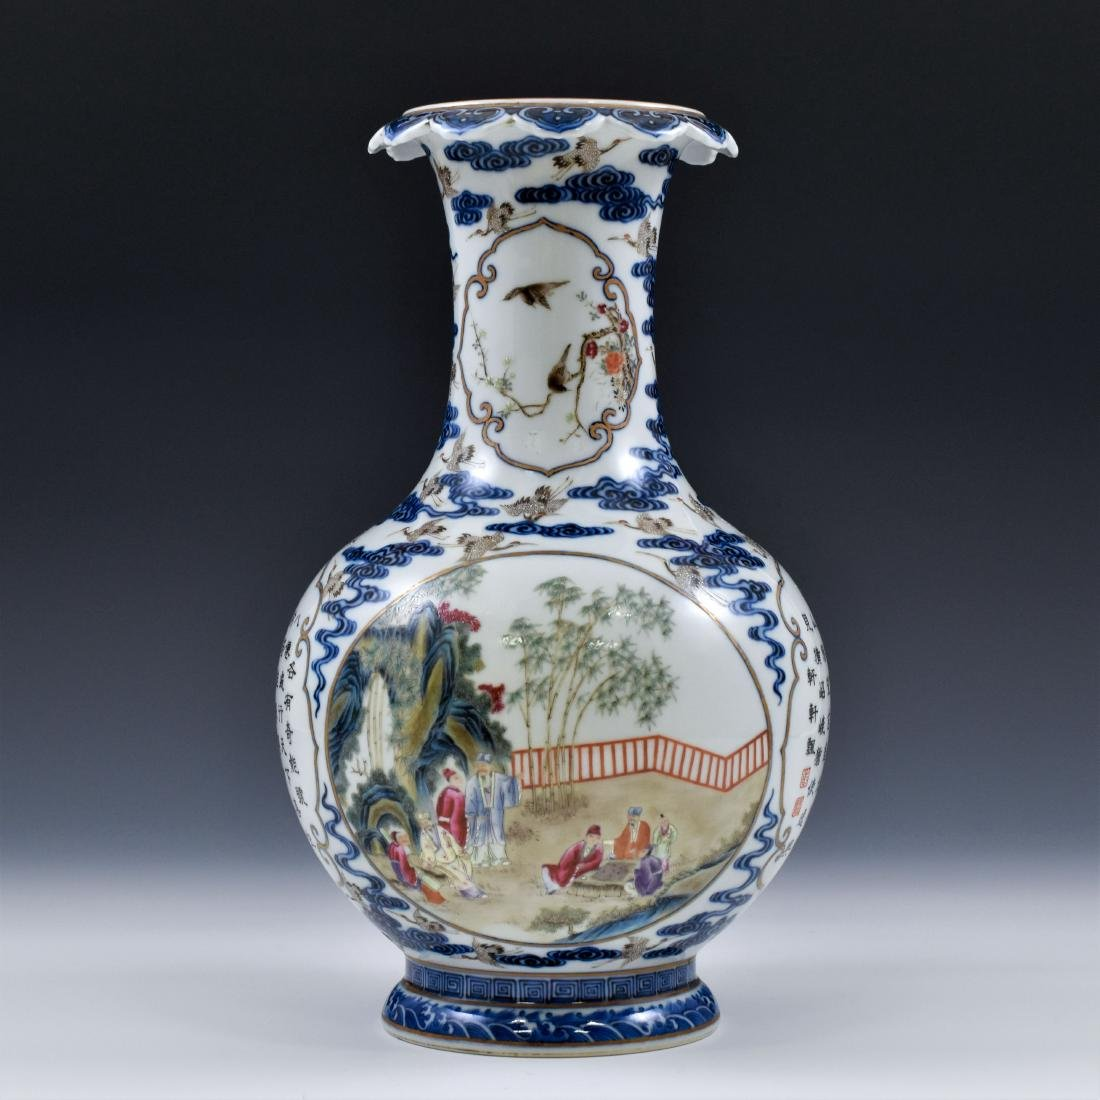 HUNDRED CRANES FAMILLE ROSE OPEN FACE VASE - 3